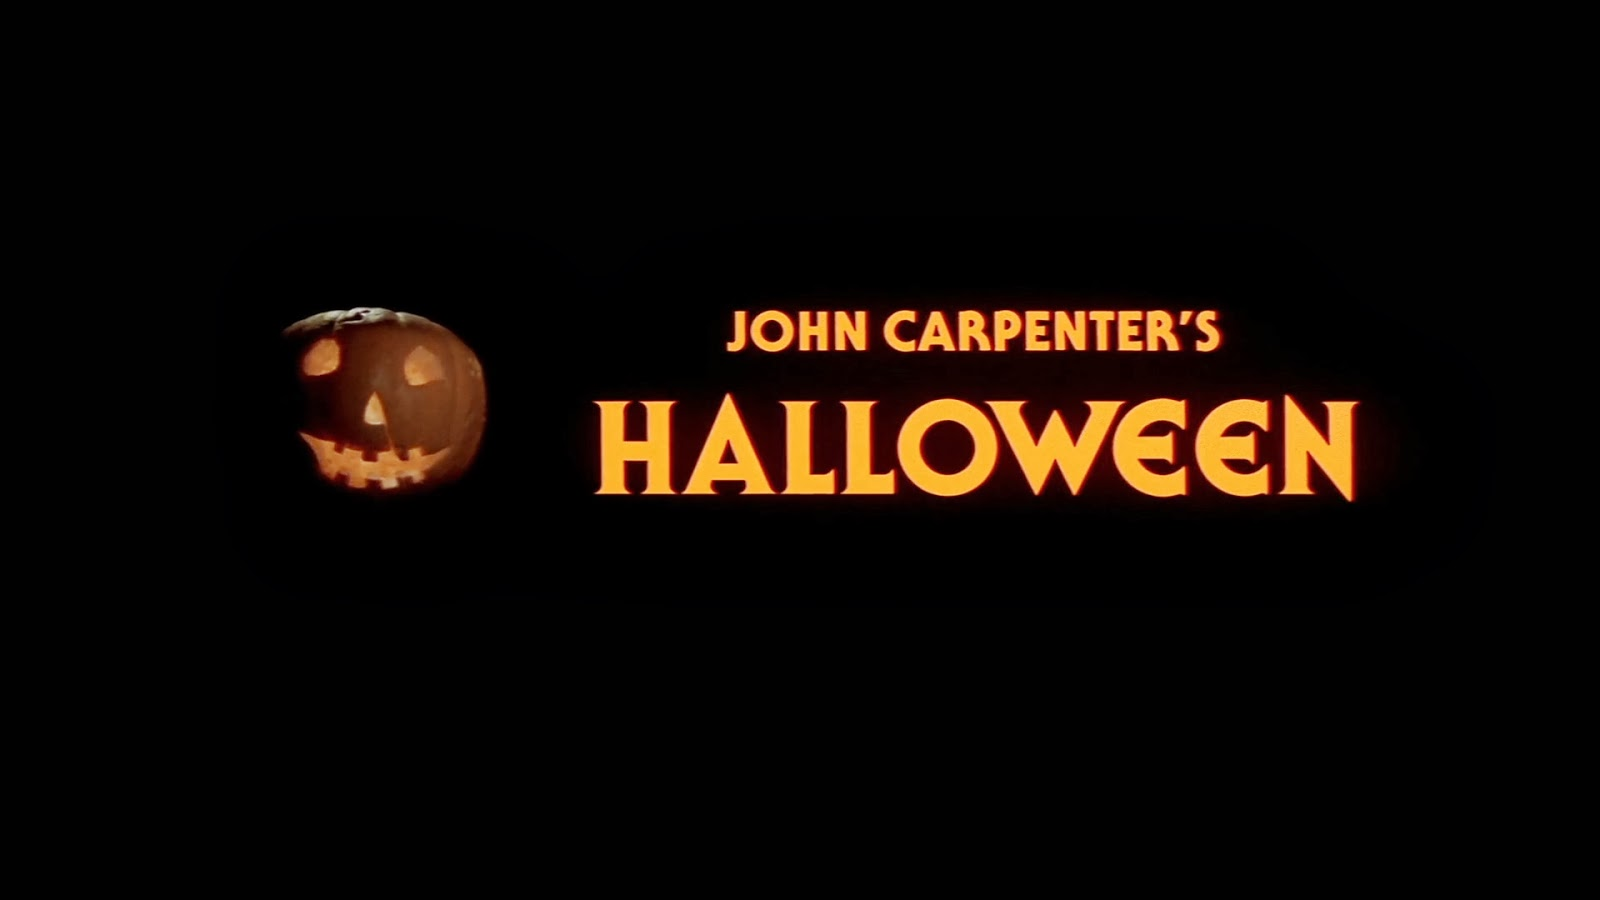 the title of the film was Film title design is a term describing the craft and design of motion picture title sequences since the beginning of the film form, it has been an essential part of .